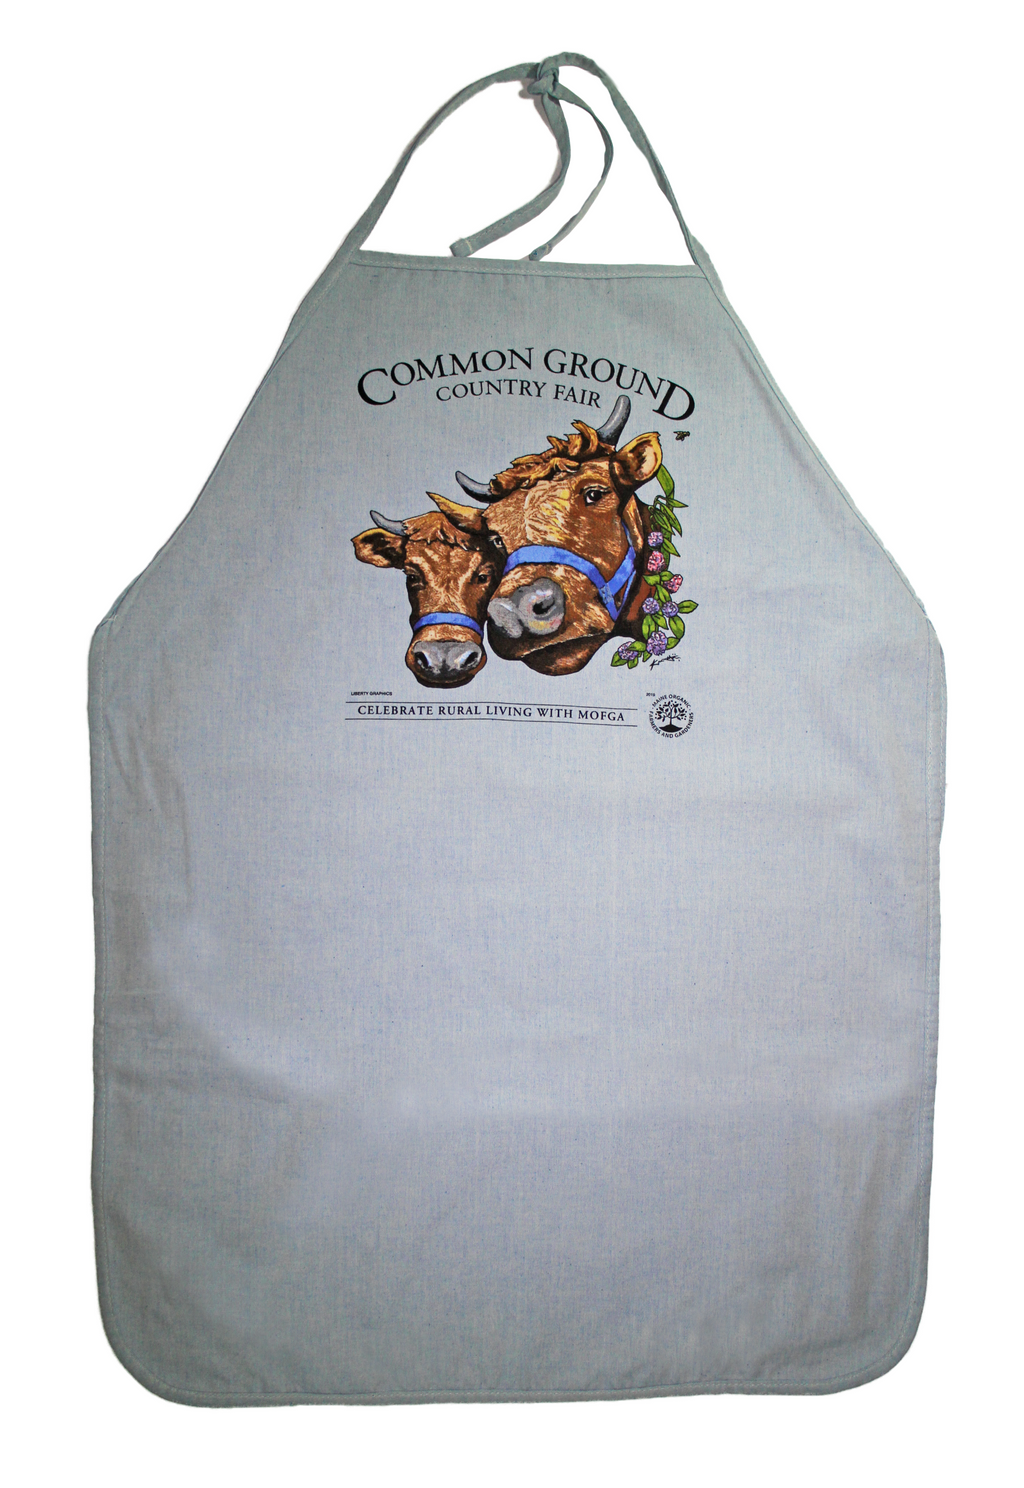 2019 Common Ground Country Fair Apron